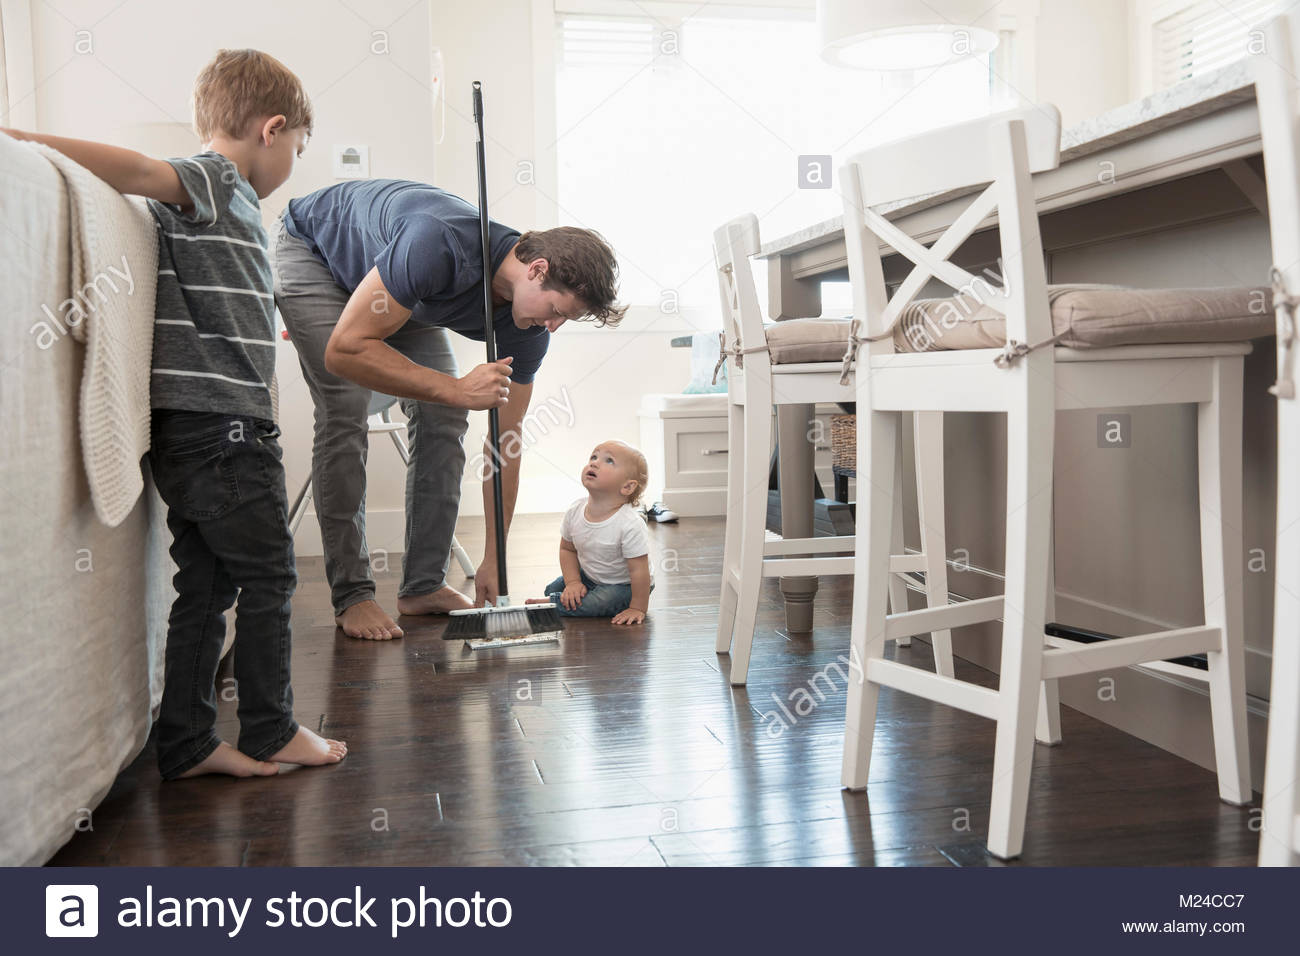 Sons watching father sweeping floor - Stock Image